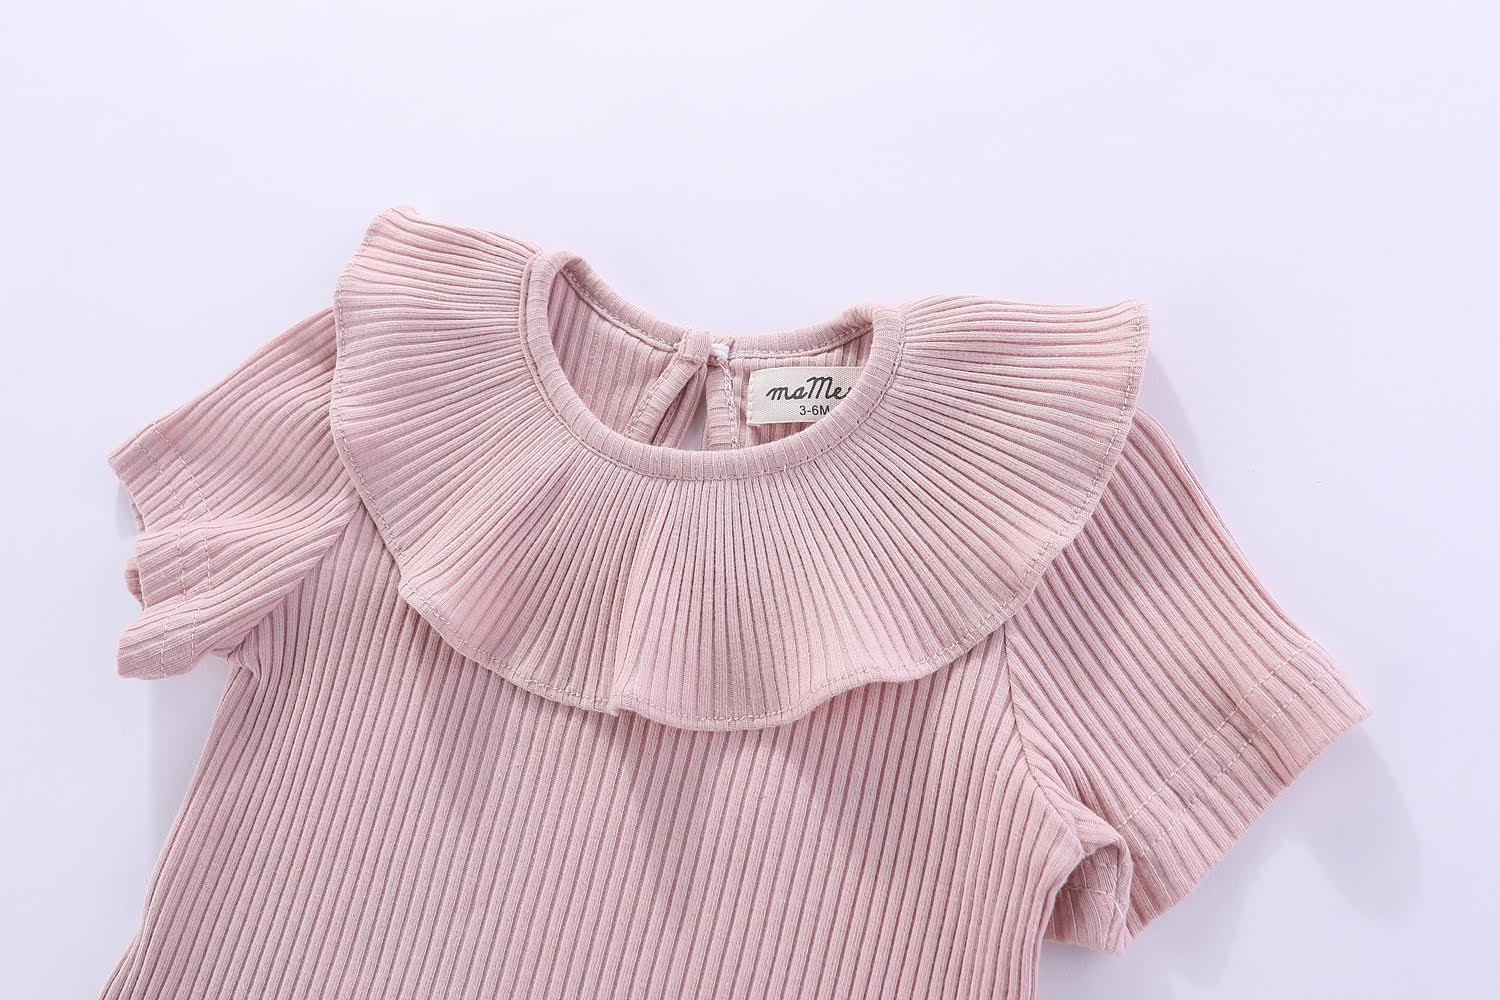 Florence Frilly Collar Short Sleeves 100% cotton bodysuit - 0-3M, 3-6M, 6-12M, 1-2Y